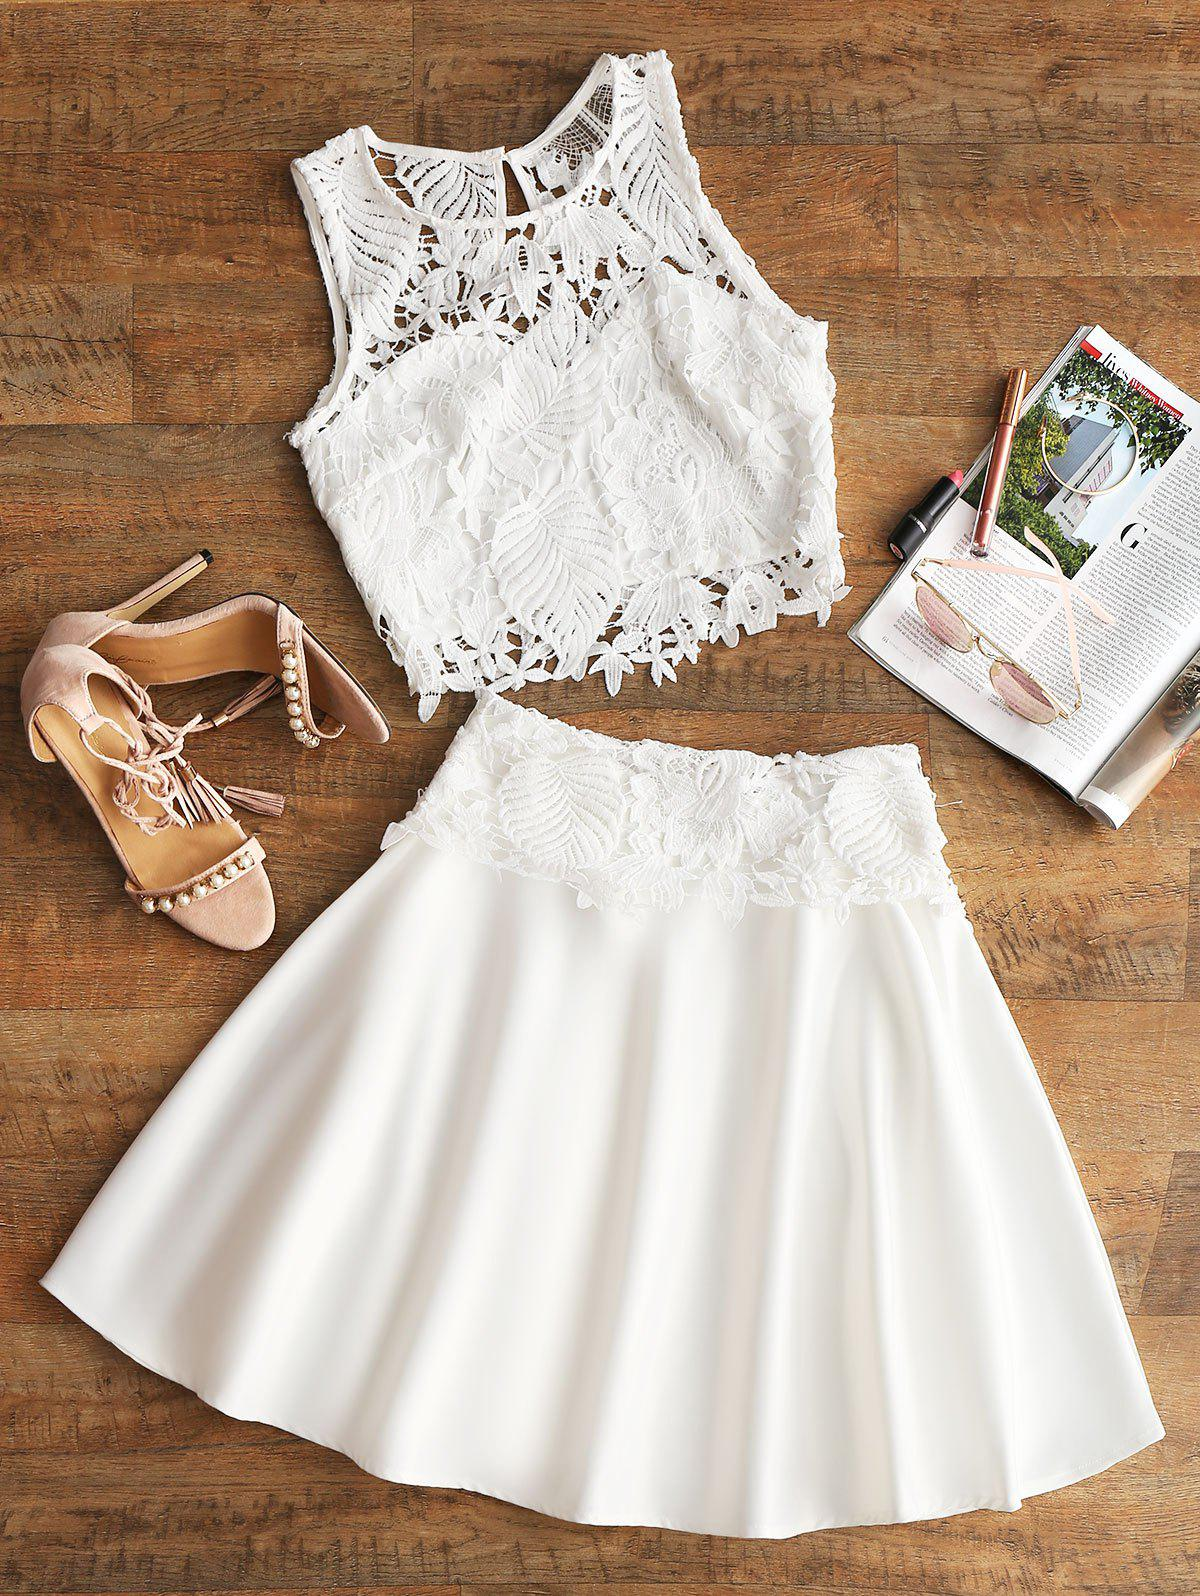 Cropped Crochet Eyelet Top and Skirt Set 254536401